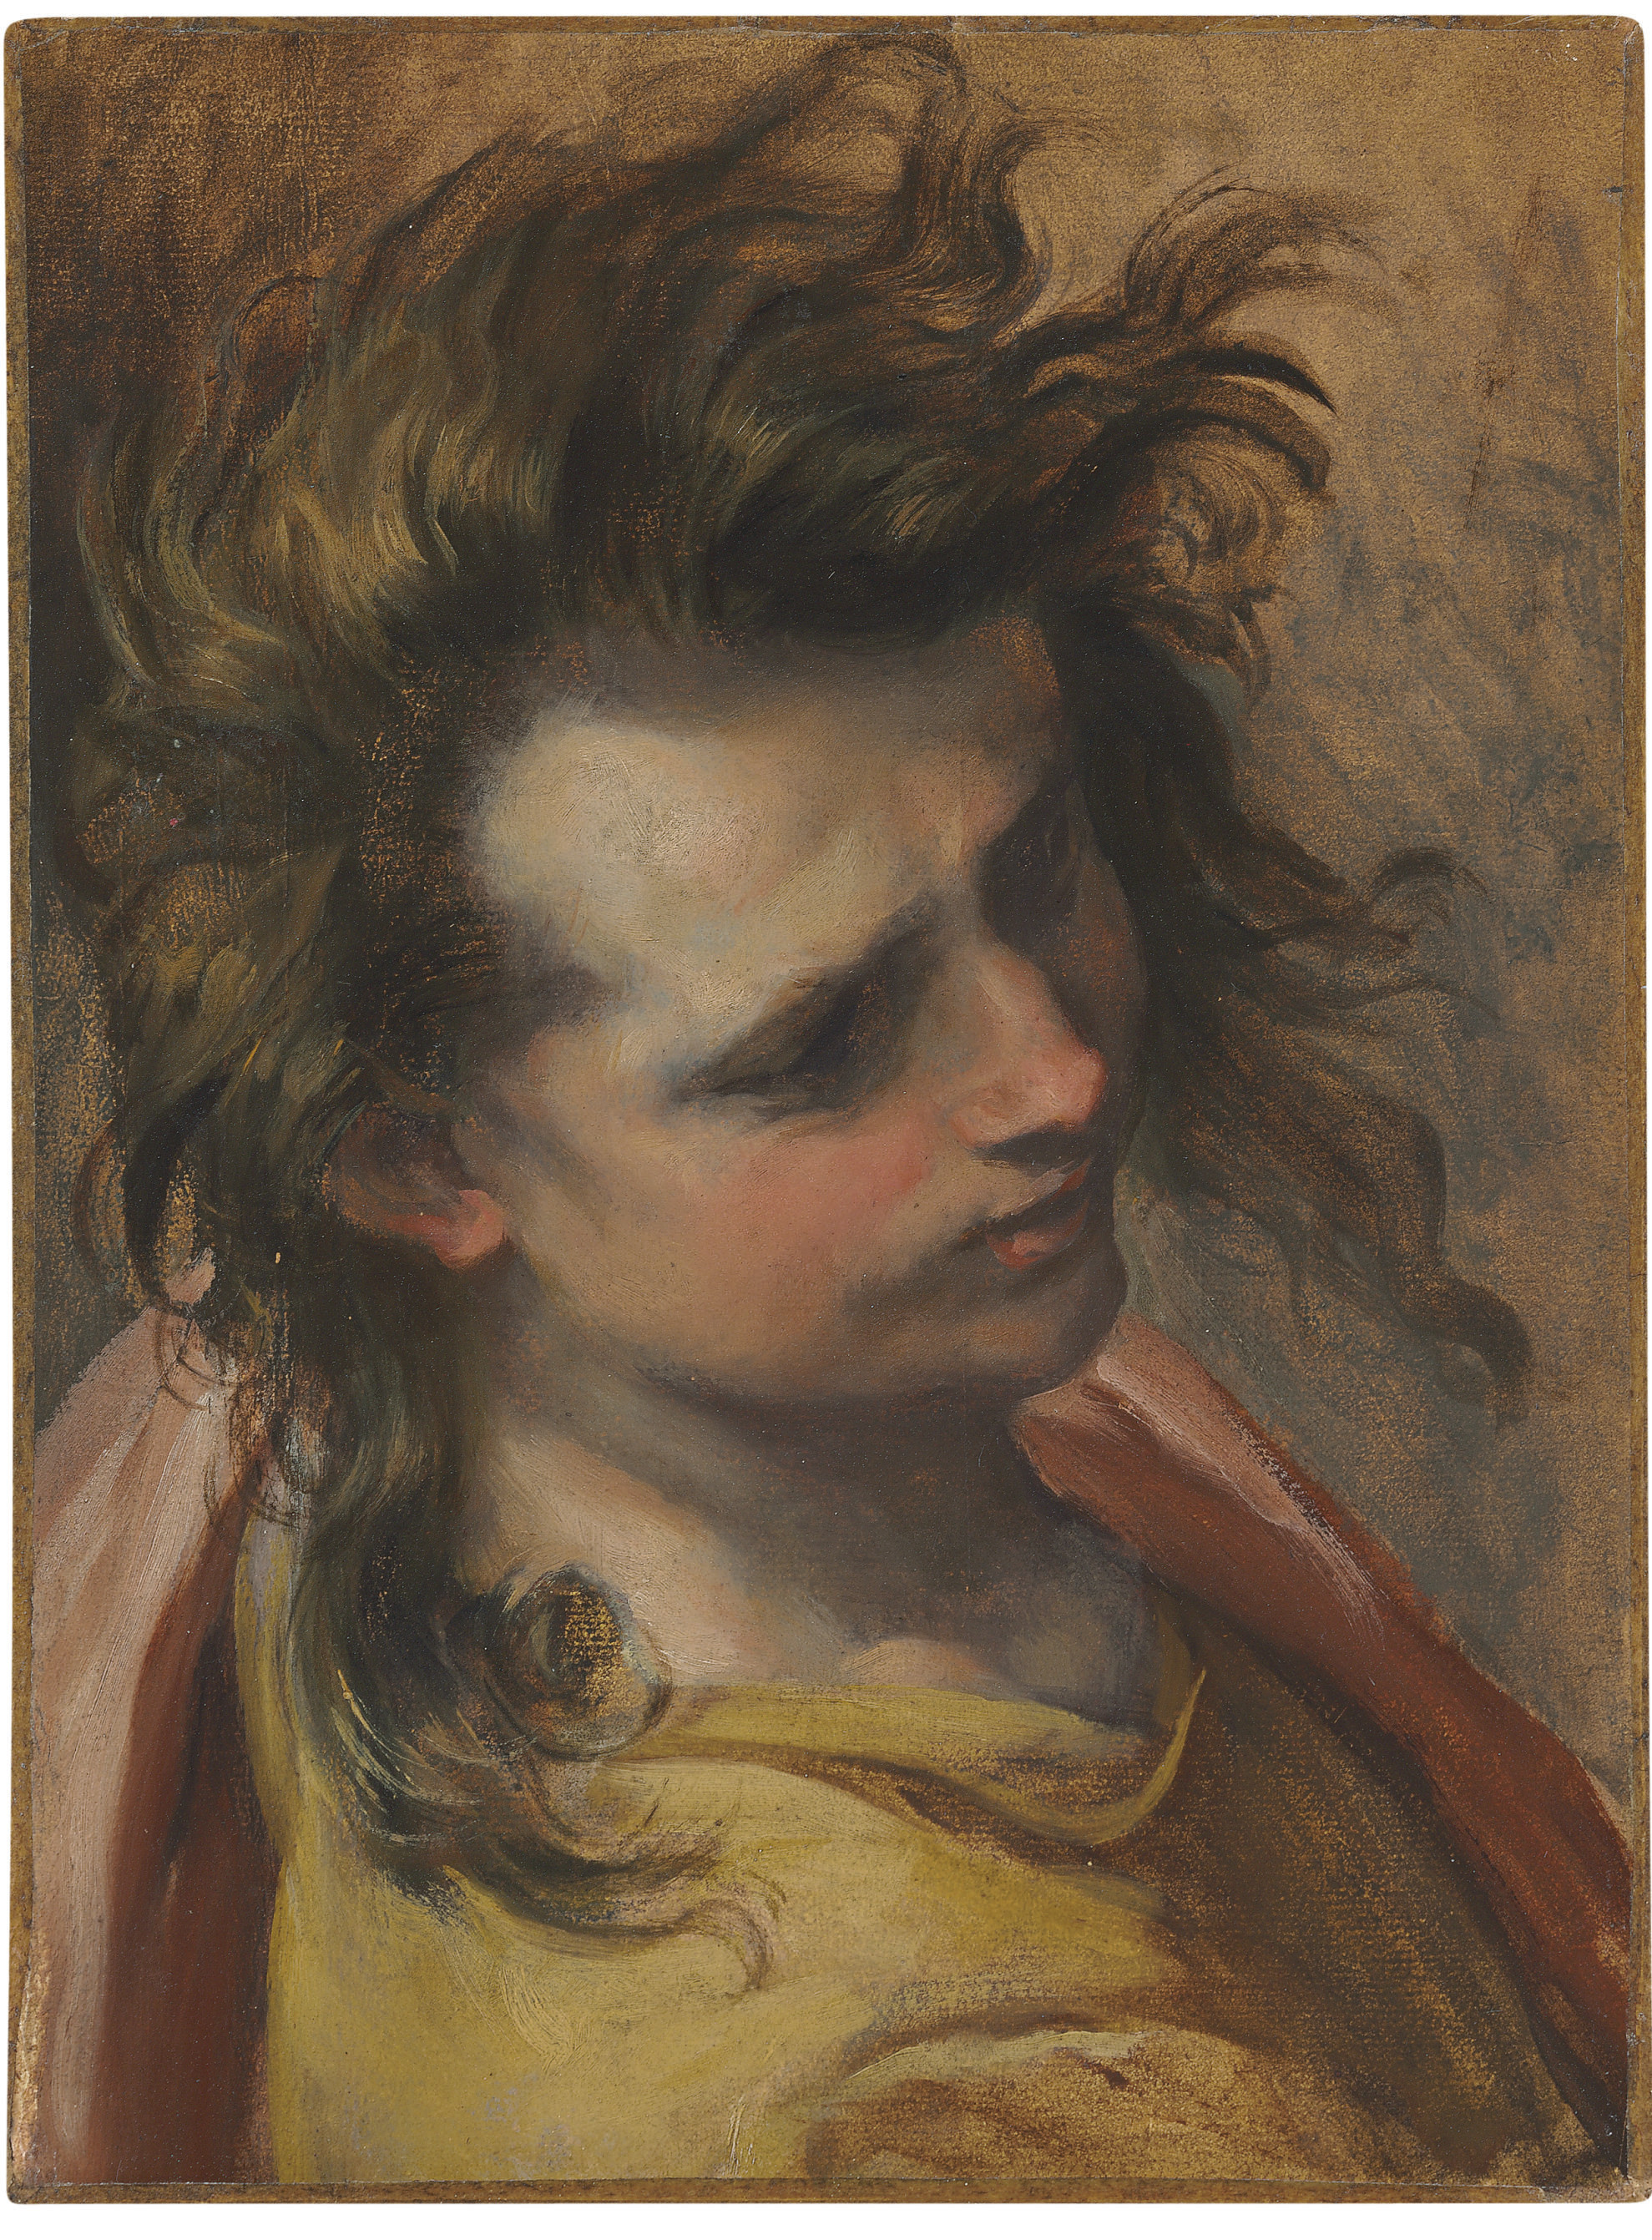 Head of Saint John the Evangelist, an oil study for The Entombment of Christ in the church of Santa Croce, Senigallia